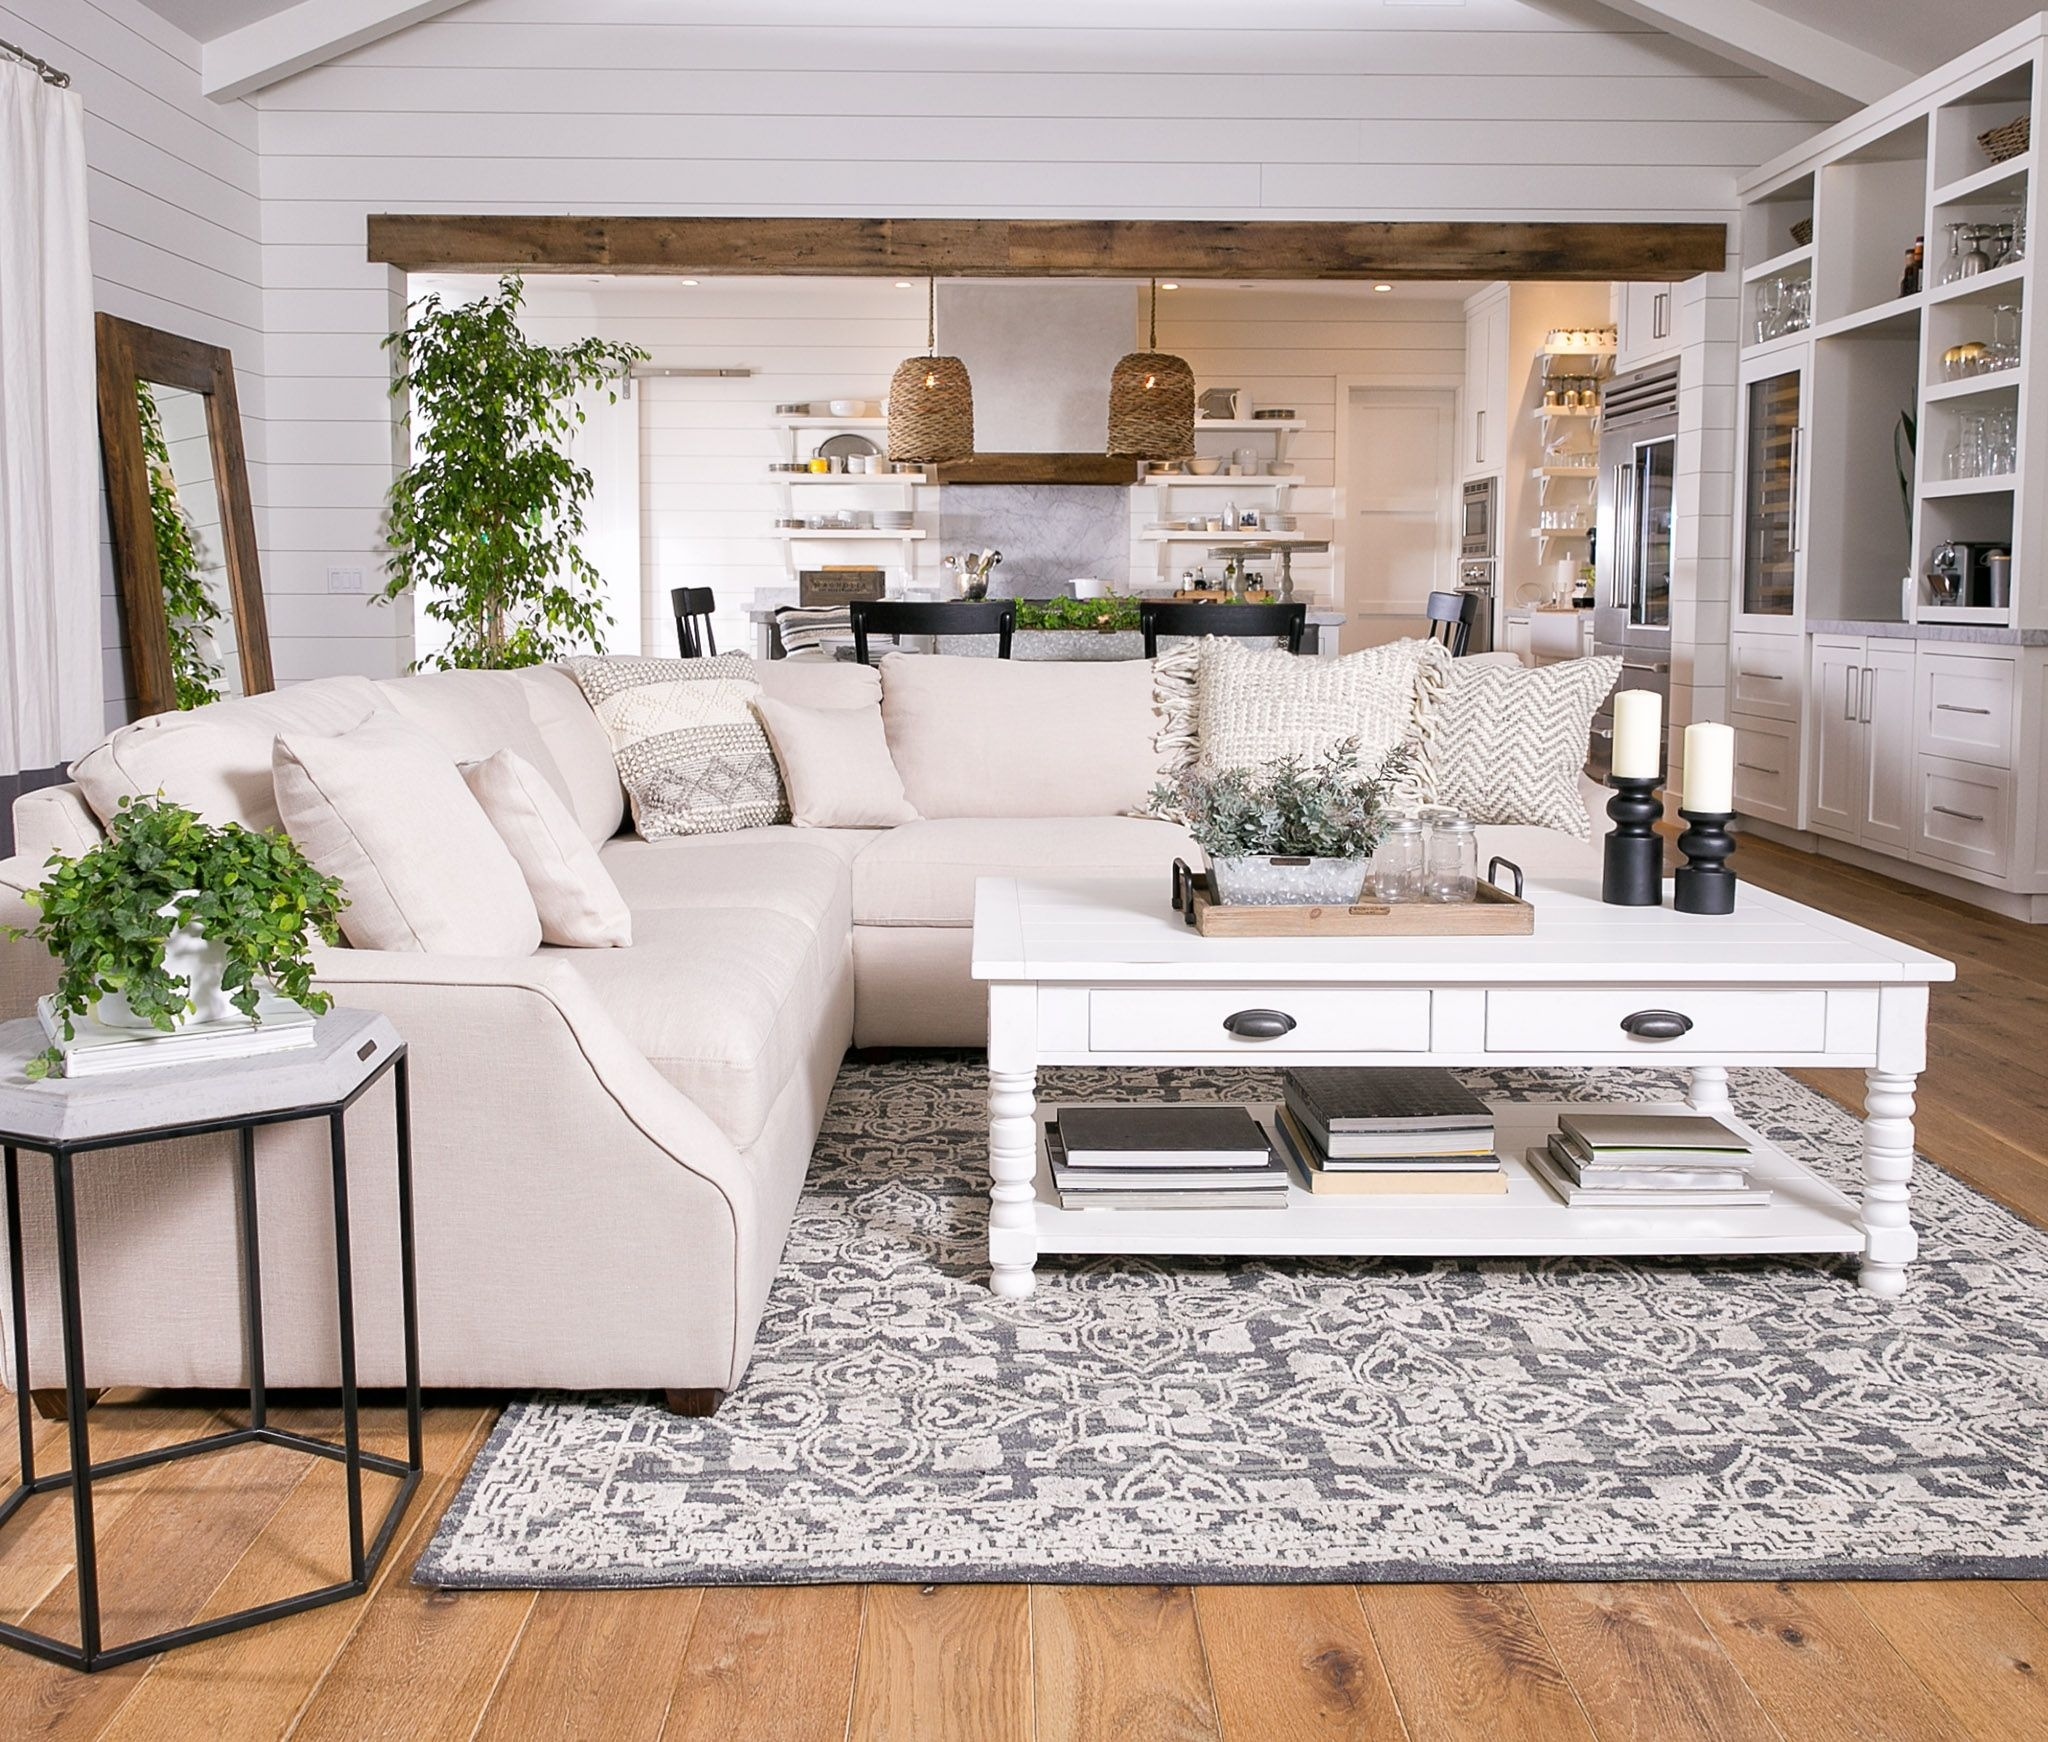 Magnolia Home Homestead 3 Piece Sectionaljoanna Gaines regarding Magnolia Home Homestead 3 Piece Sectionals by Joanna Gaines (Image 17 of 30)